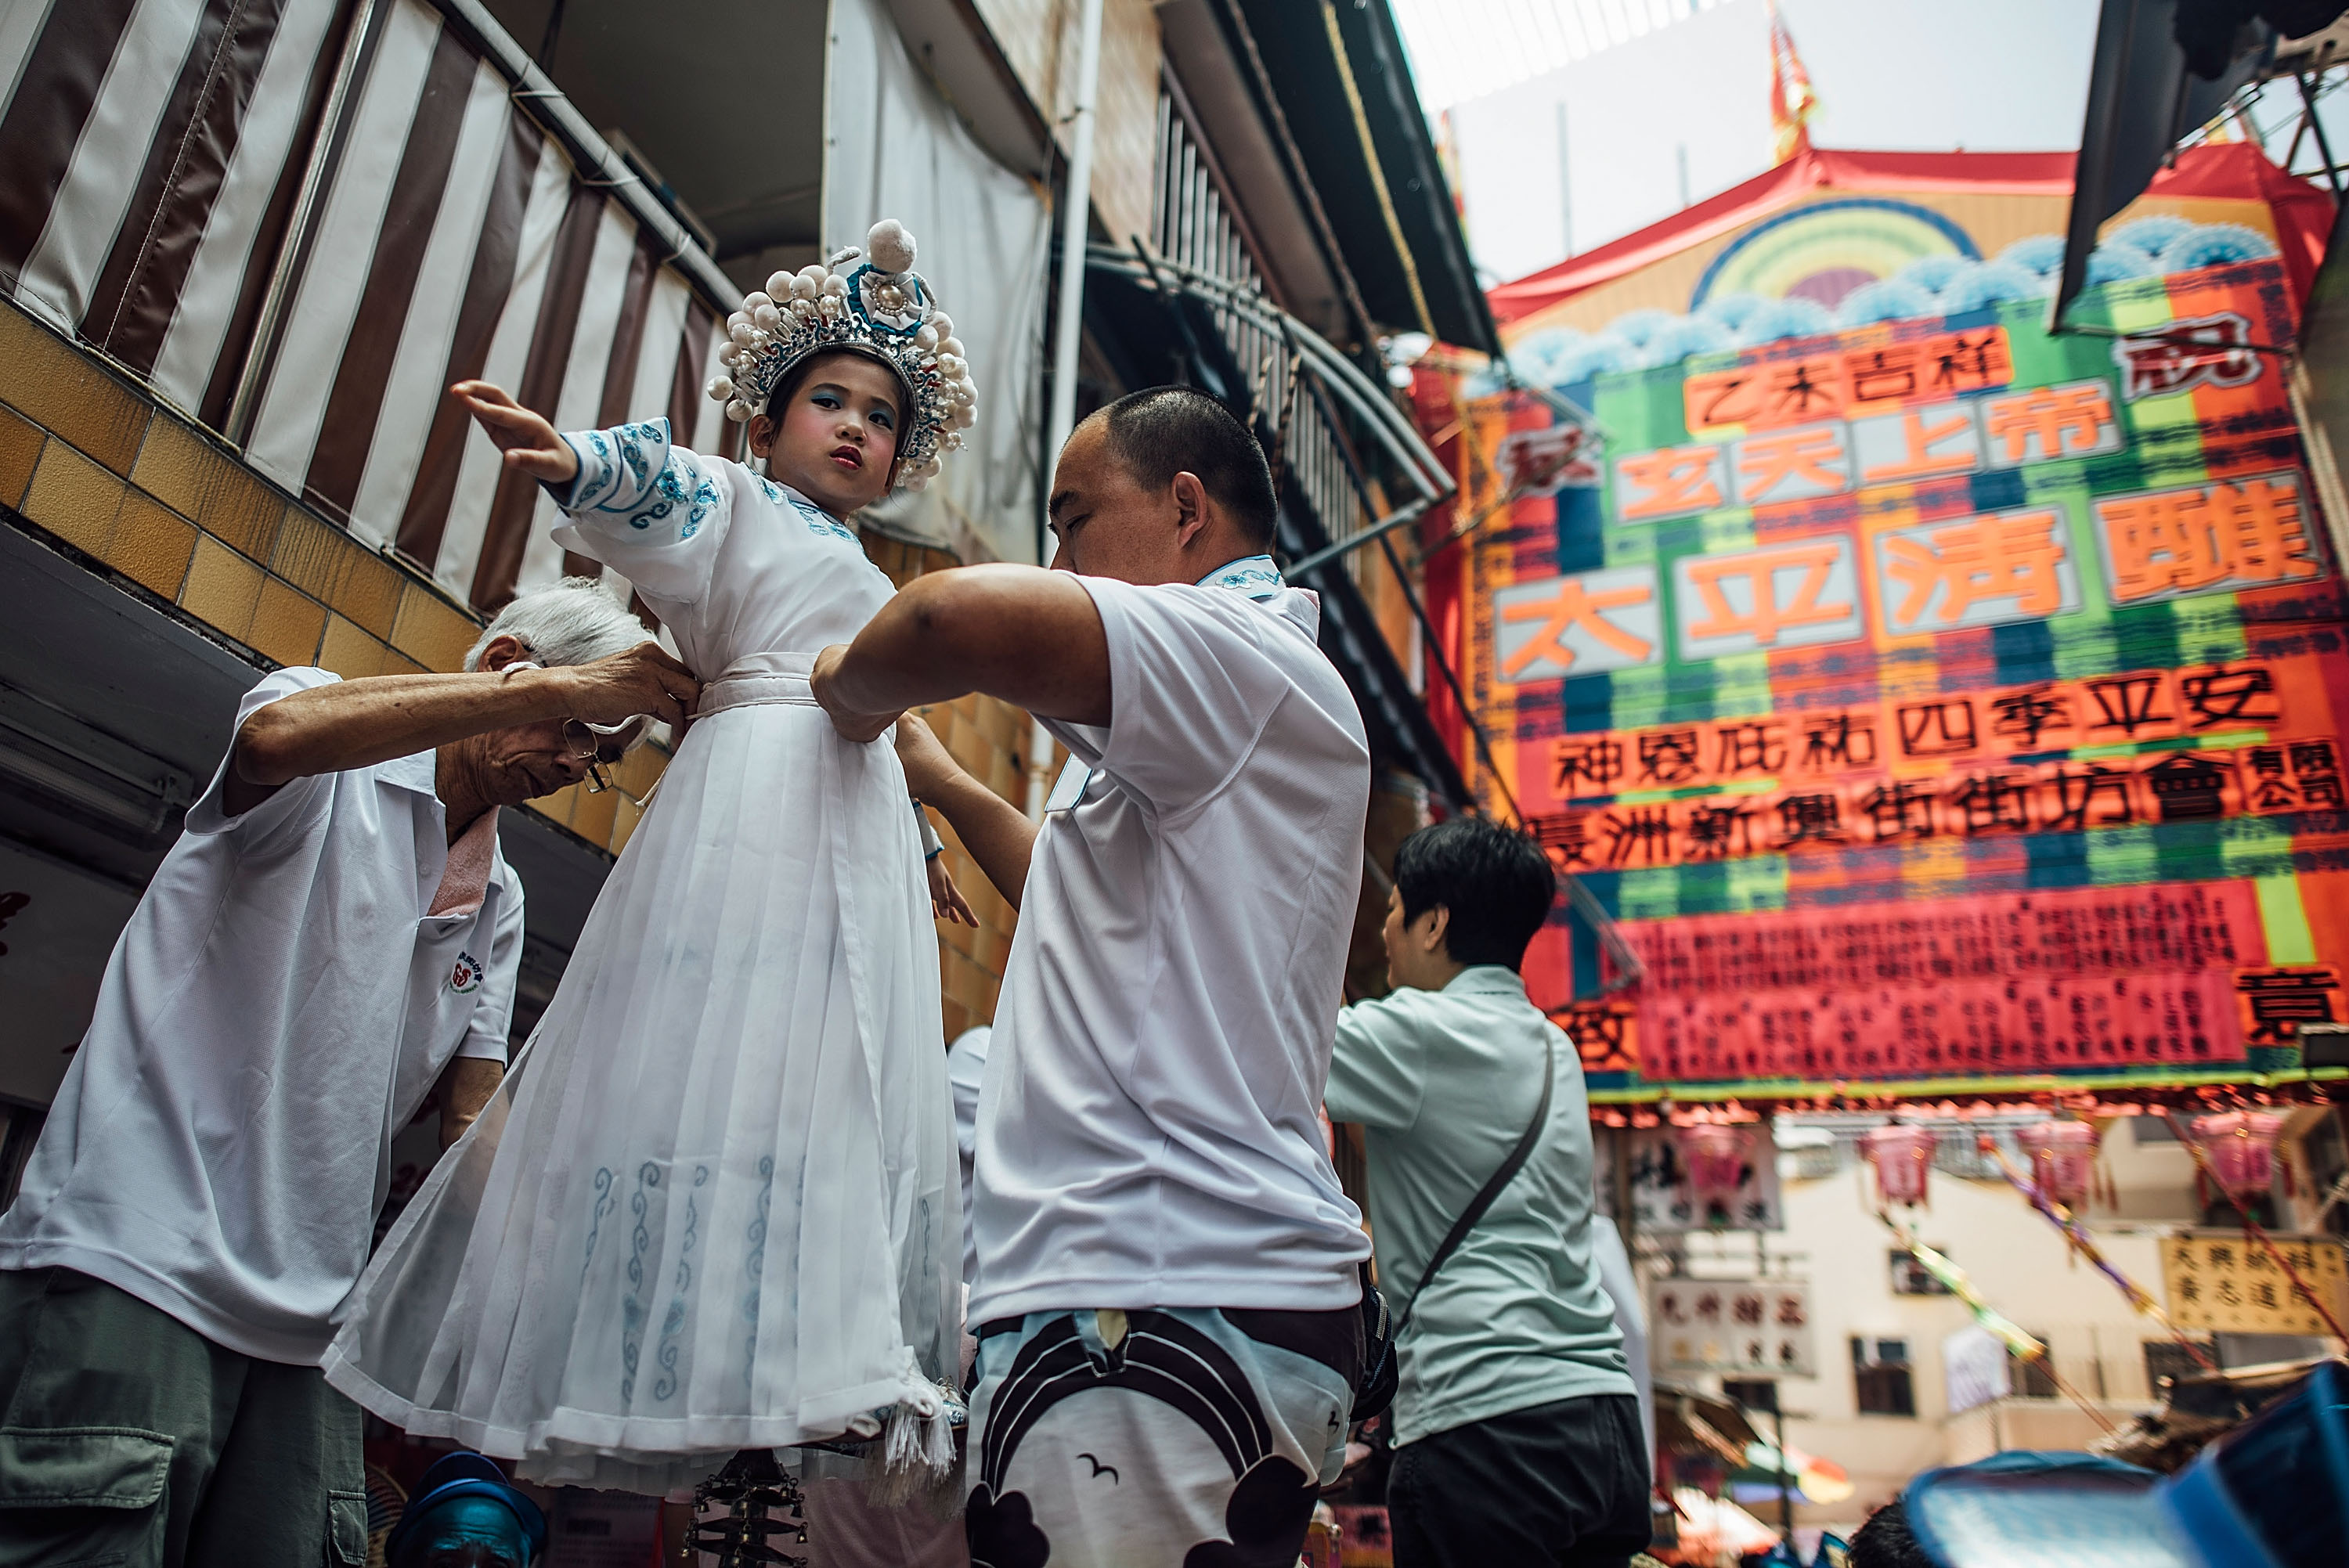 HONG KONG - MAY 25:  Children prepare for the Piu Sik (Floating Colours) Parade at Bun Festival in Cheung Chau Island on May 25, 2015 in Hong Kong. One of Hong Kong's most colourful cultural celebration events, Cheung Chau Bun Festival, will be staged on 25 May 2015 (Monday) until 26th May 2015 midnight (Tuesday). The festival has over 100 years of history. Every year, thousands of people descend upon the tiny island for The Piu Sik (Floating Colours) Parade, Lucky Bun (Ping On Bun) and The Bun Scrambling Competition, the ancient custom during the festival. The tradition has been passed down for generations. To ensure the tradition keeps passing on, every year, Cheung Chau Islanders fuse the new elements with the custom to draw the attention from the young. This year, 'K-Pop stars' will be featured by one of the Piu Sik parade teams, the first-ever 'Ping On (Lucky) Macaron' with Chinese tea favour is invented, and more to be found out on the island.  (Photo by Anthony Kwan/Getty Images for Hong Kong Images)